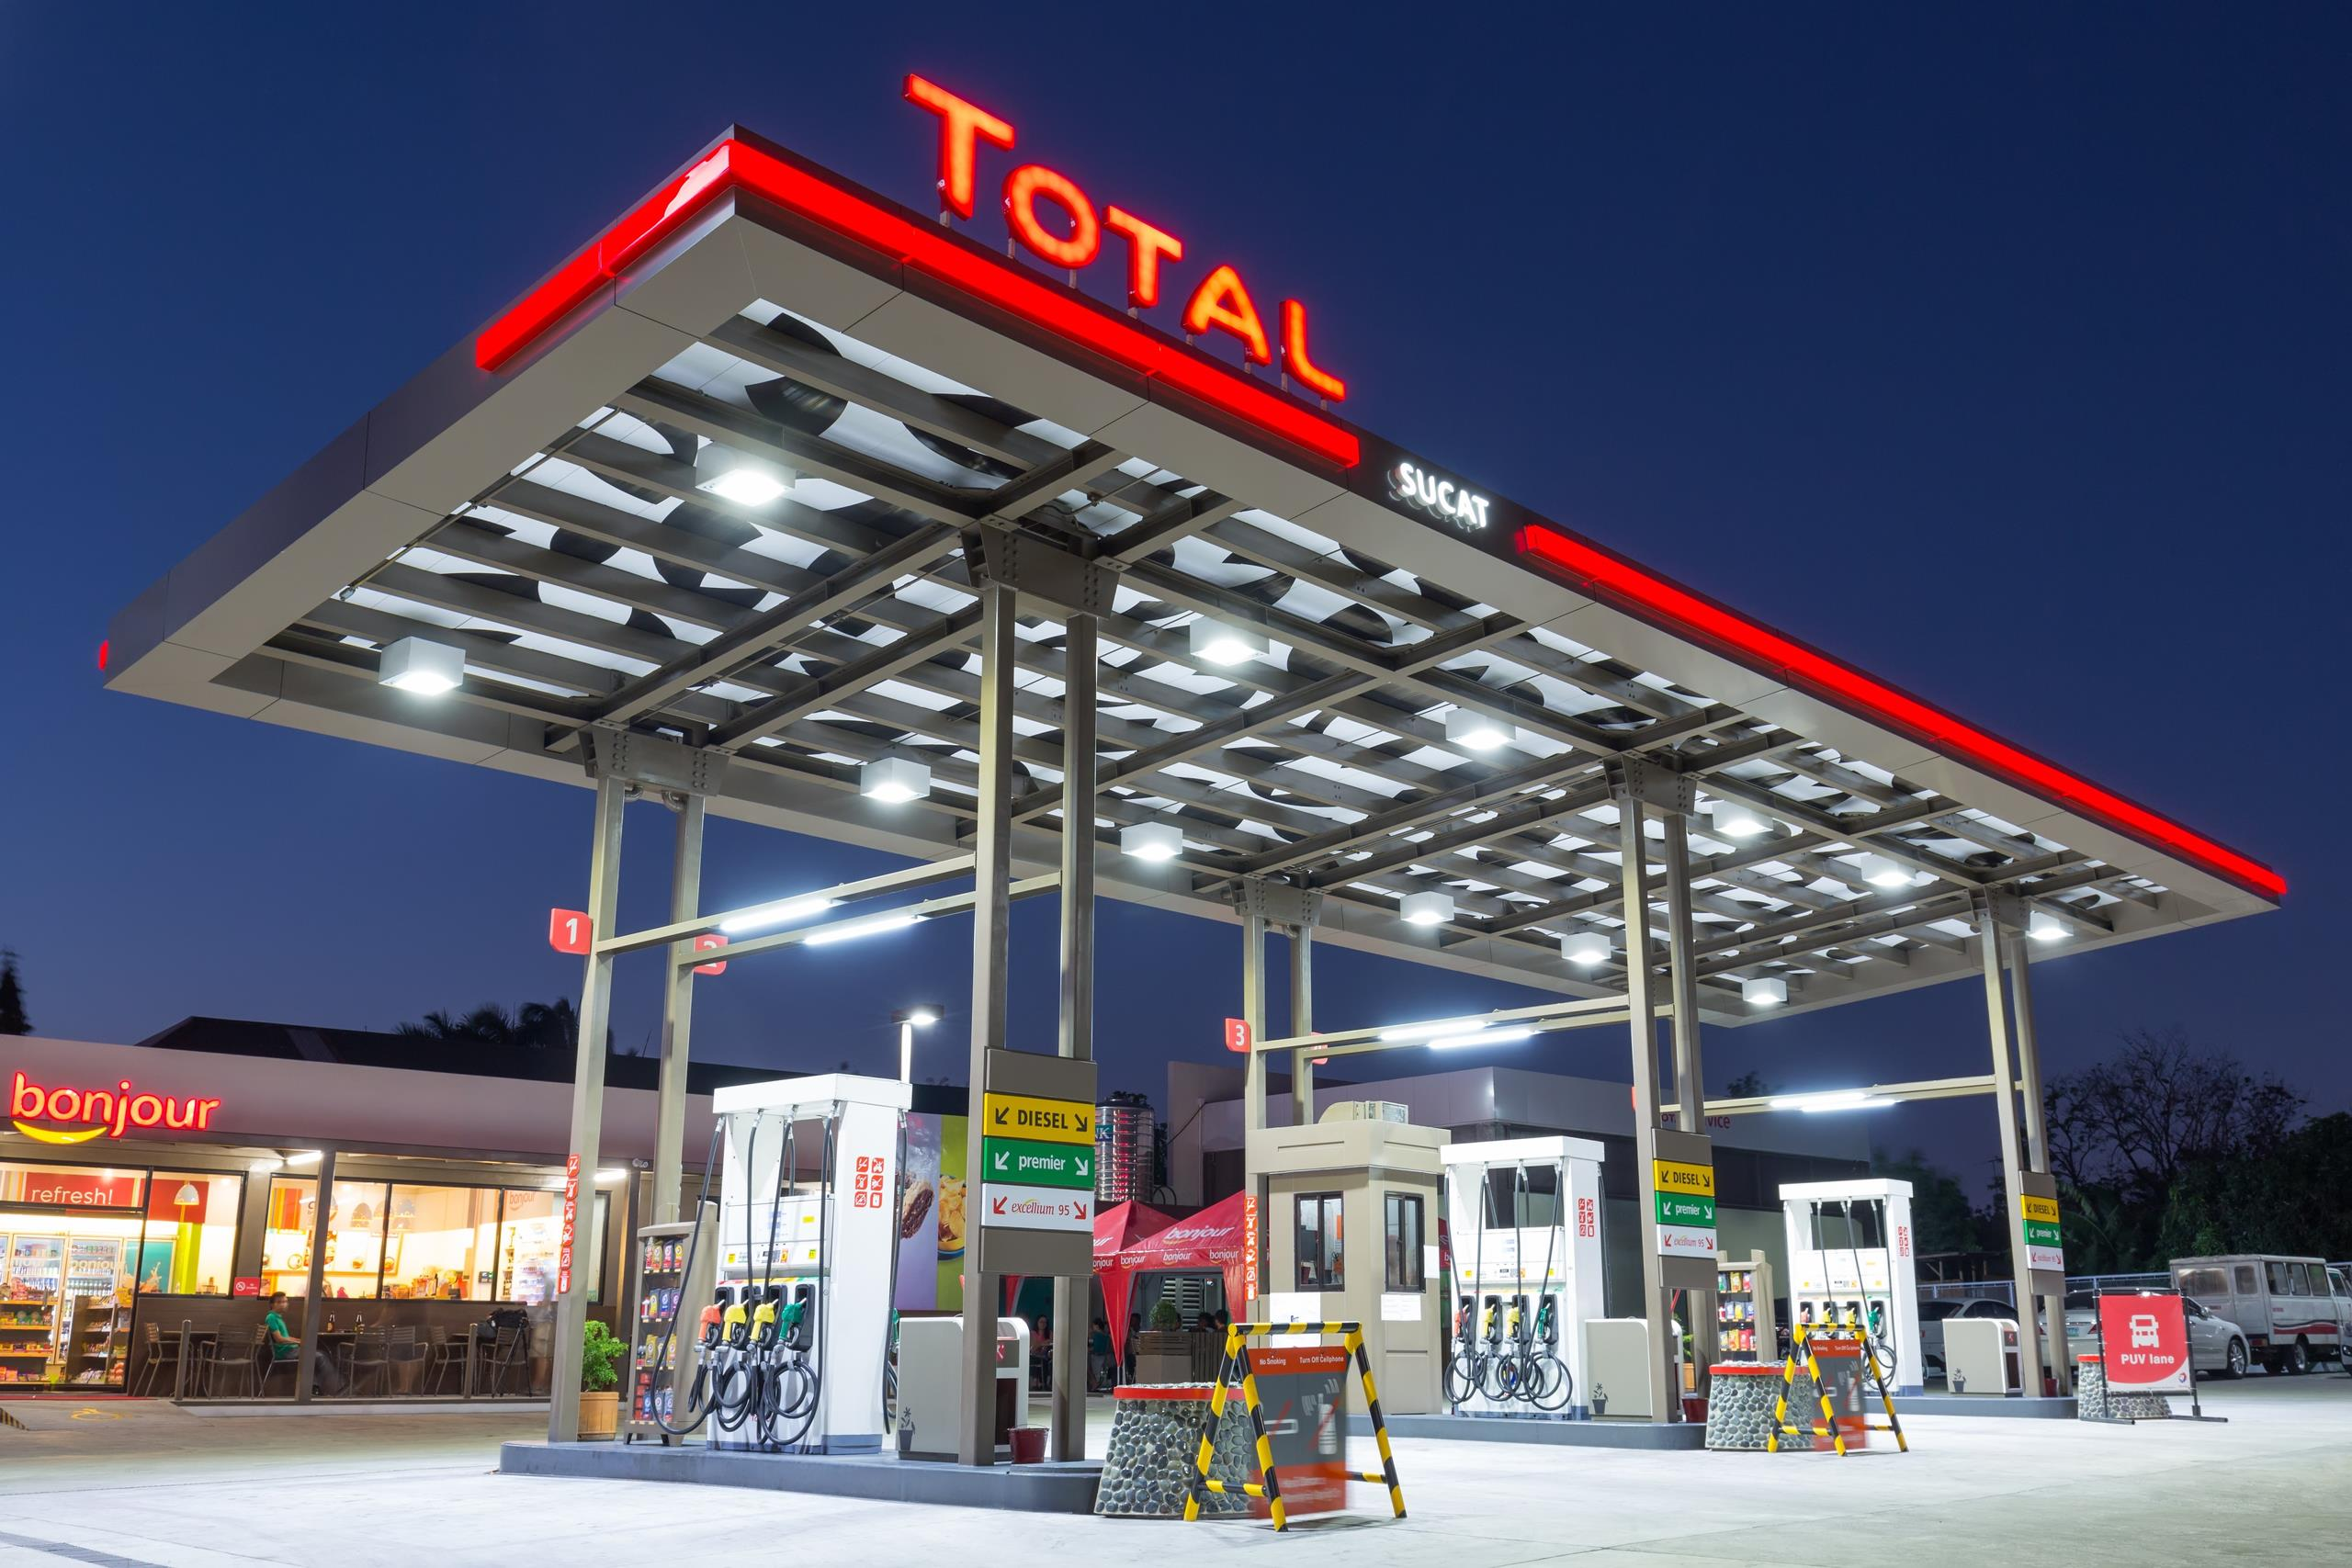 total to install solar power in 5 000 fuel stations. Black Bedroom Furniture Sets. Home Design Ideas